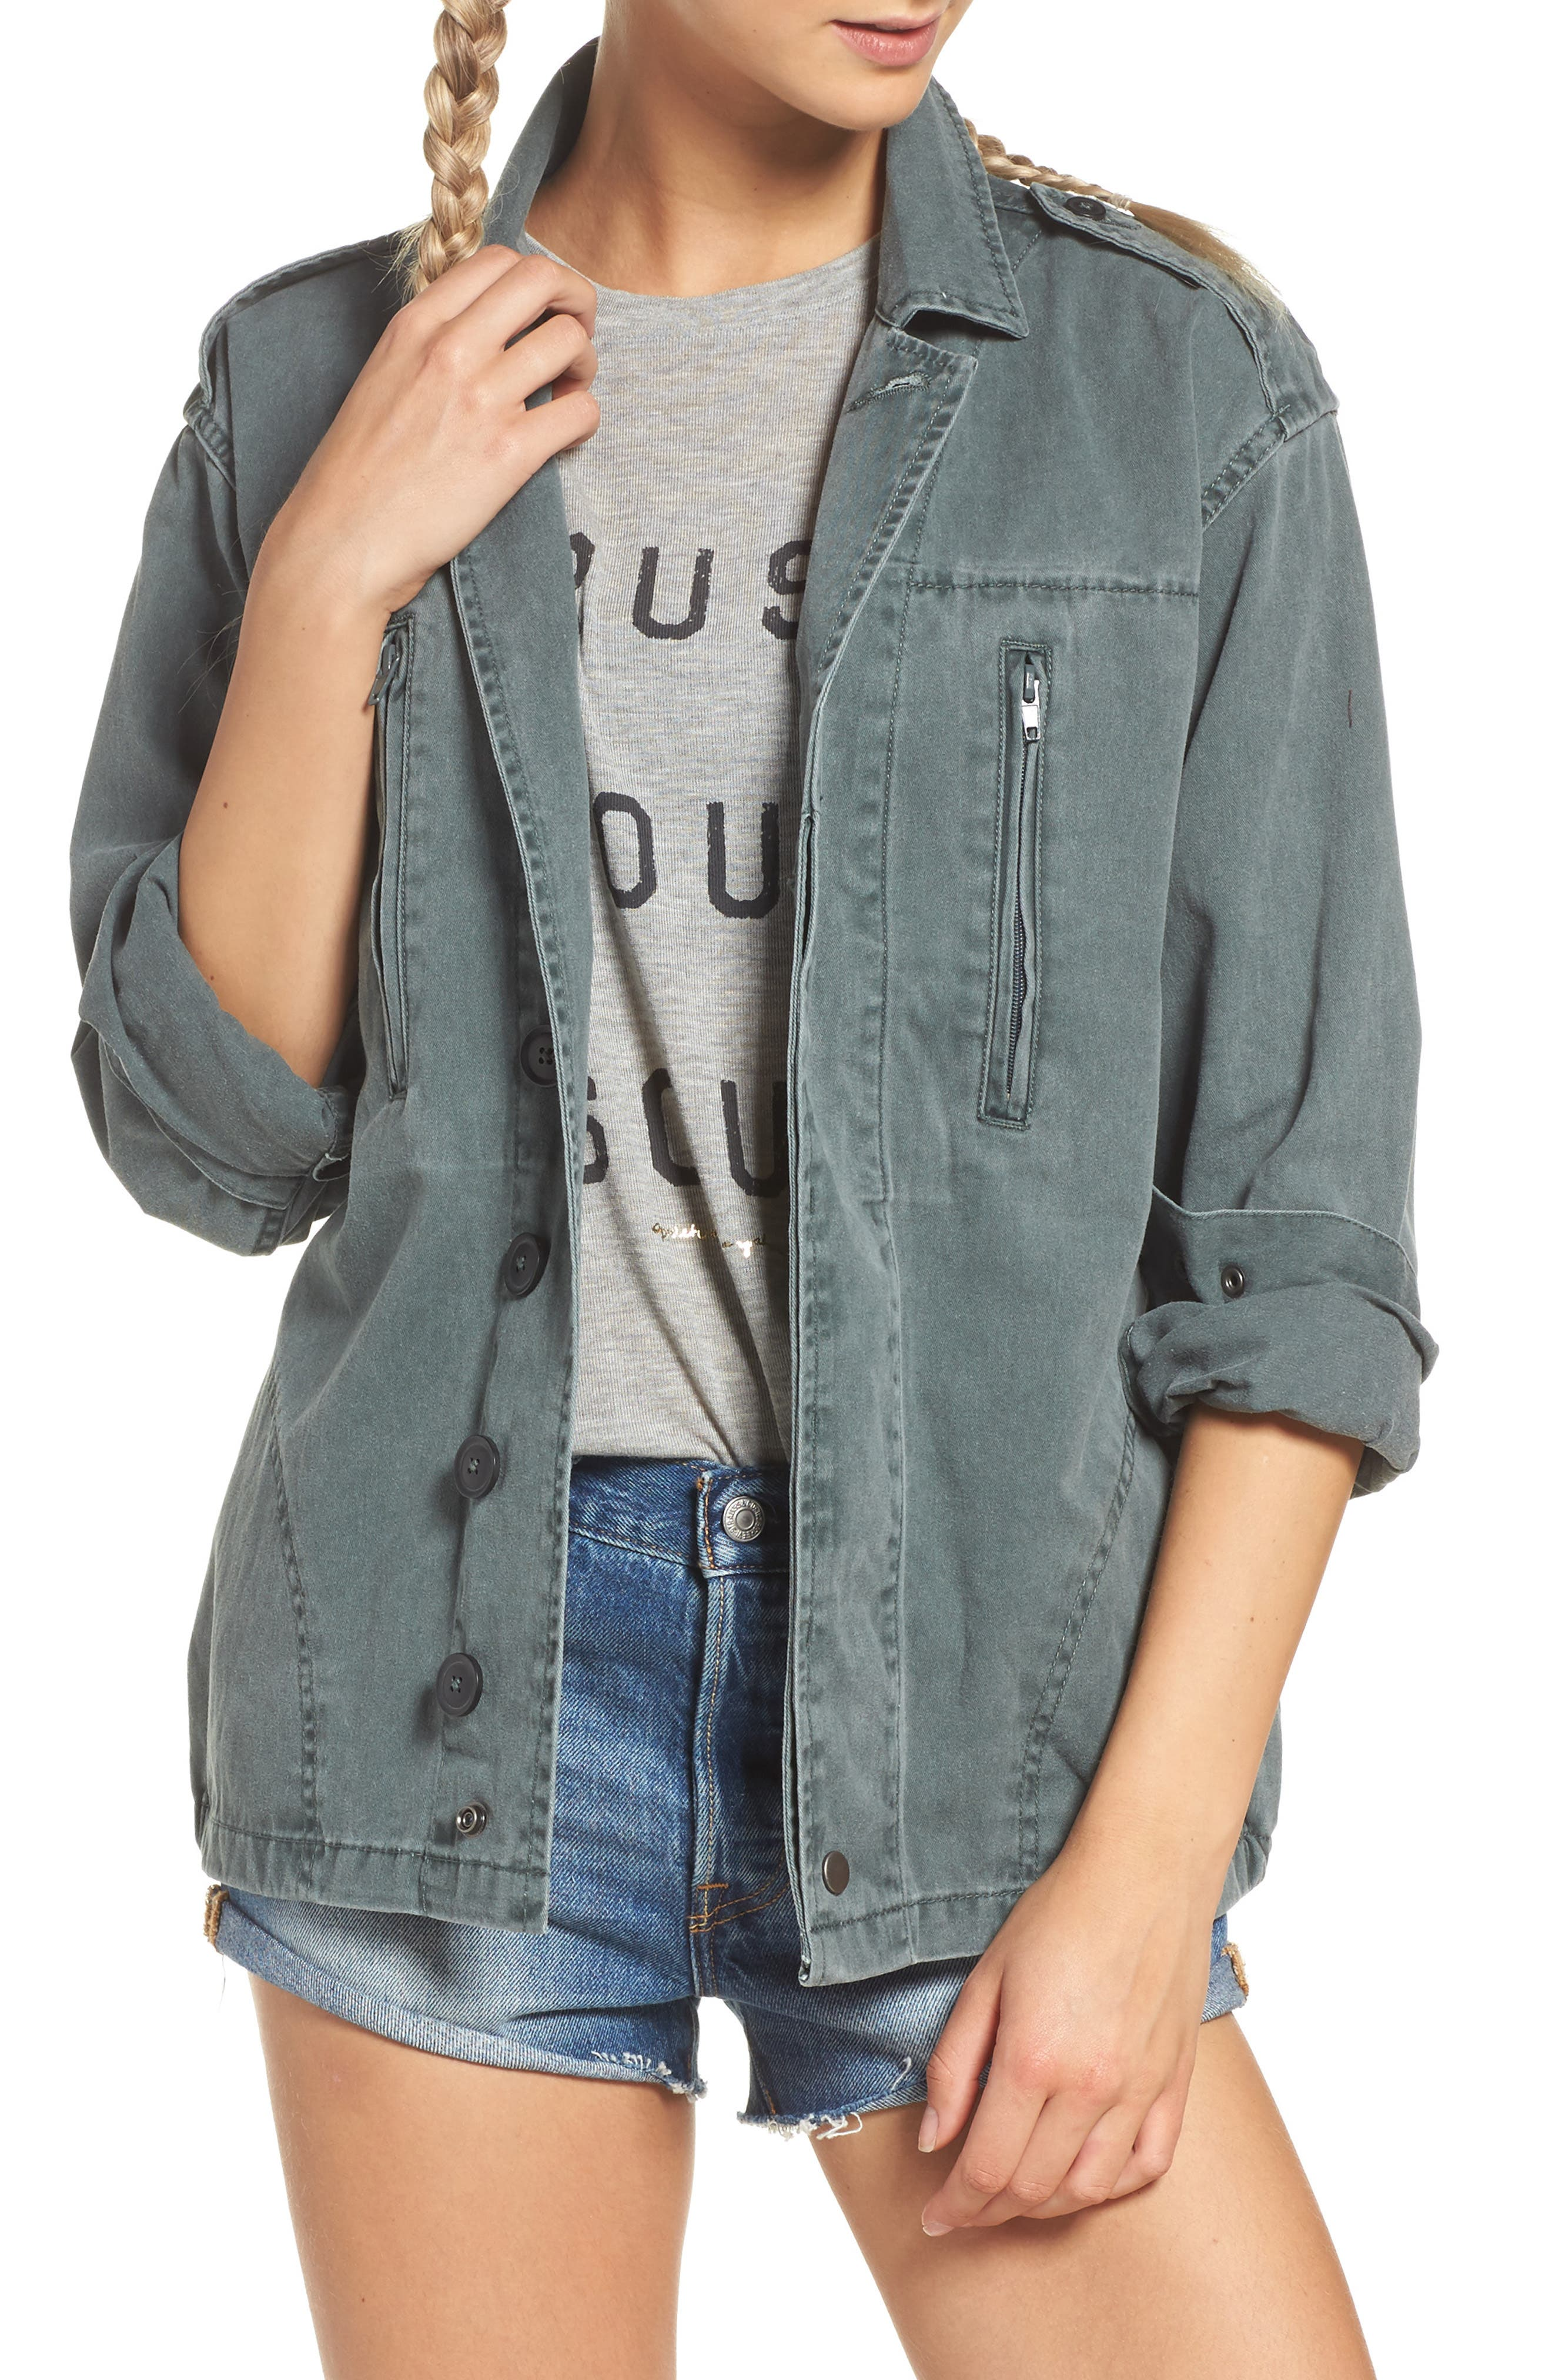 Stay Wild Gypsy Child Amy Jacket,                             Main thumbnail 1, color,                             Army